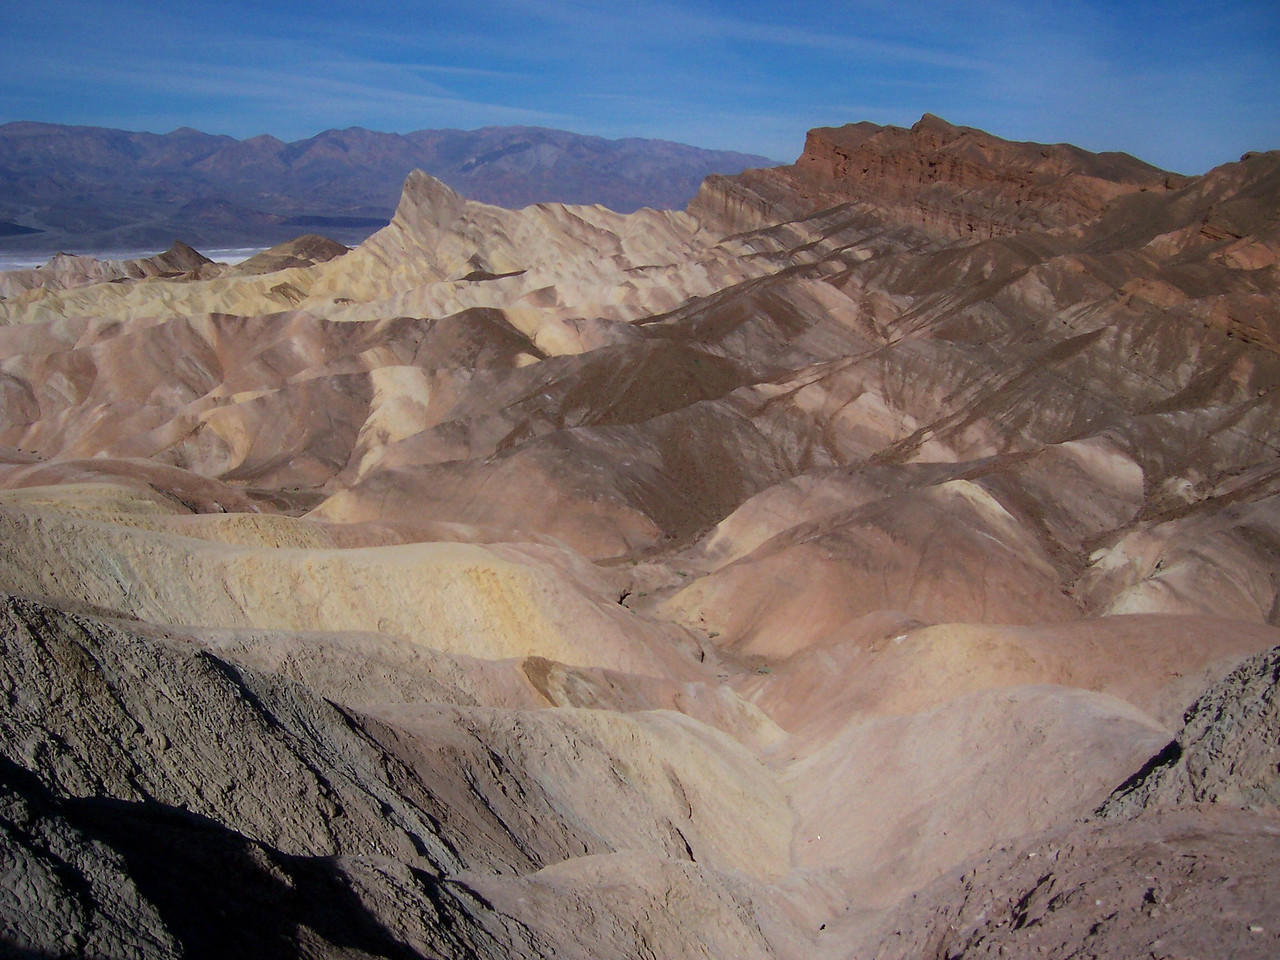 We set off with Paul for Zabriskie Point knowing the gang was in Mike's capable hands.